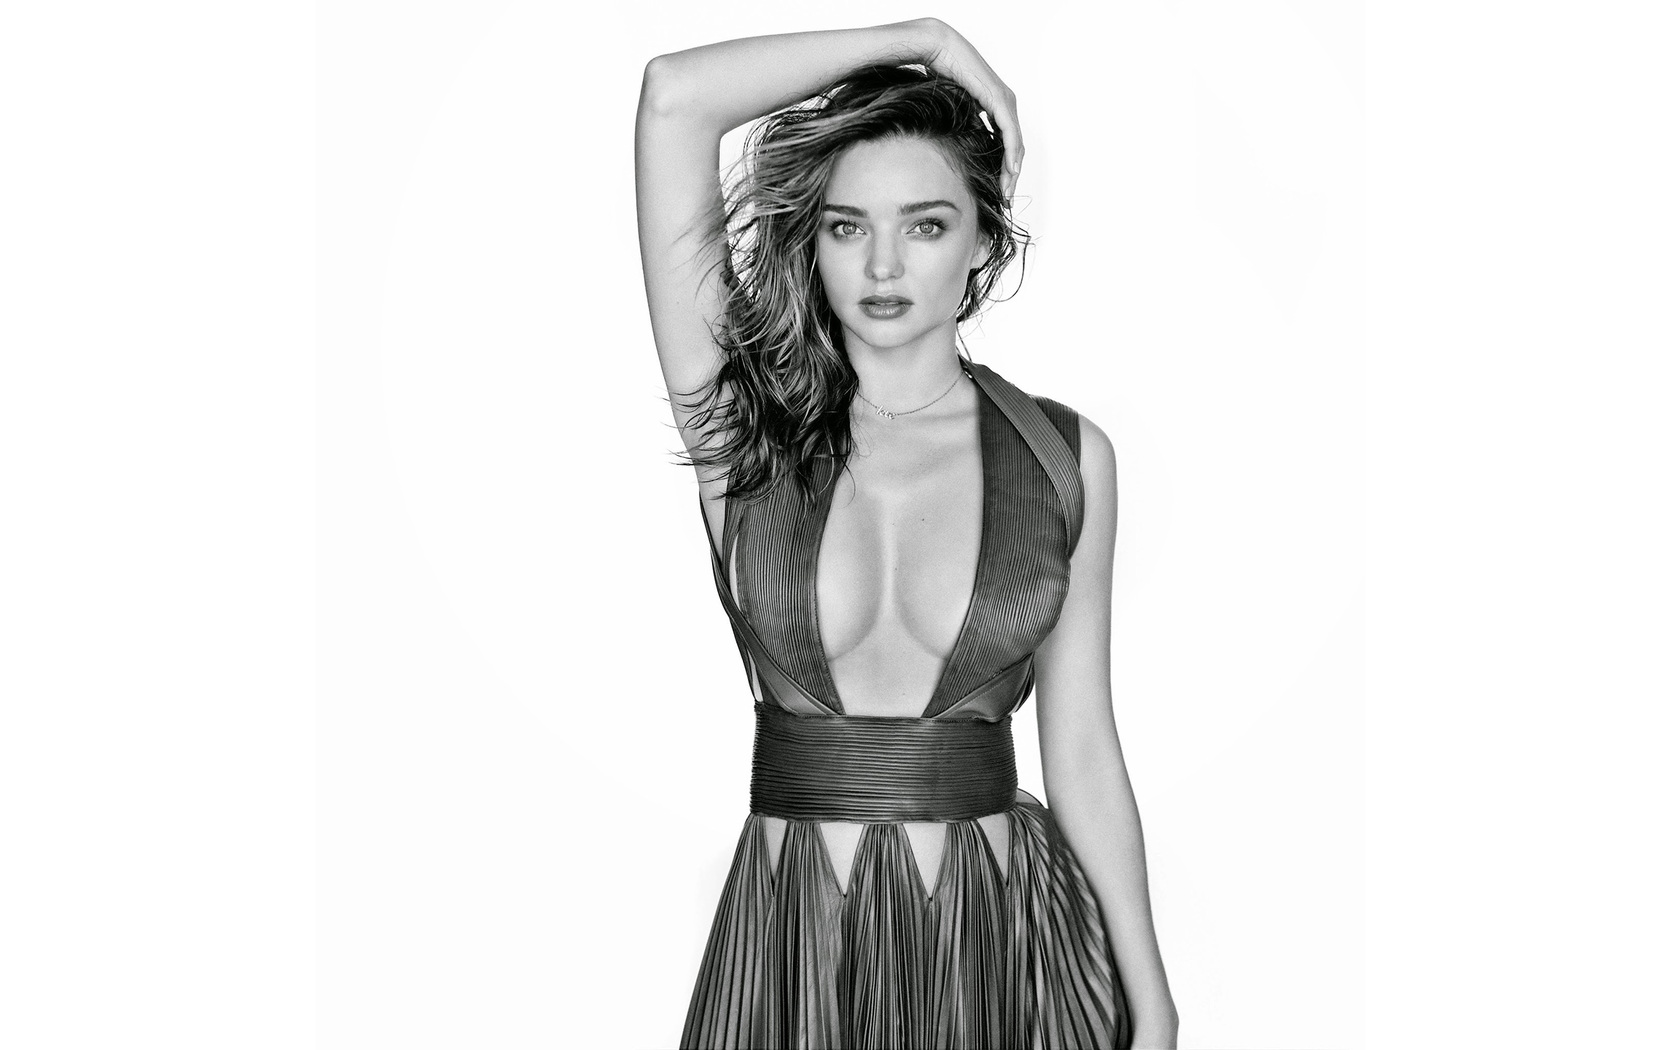 miranda-kerr-black-and-white-fv.jpg